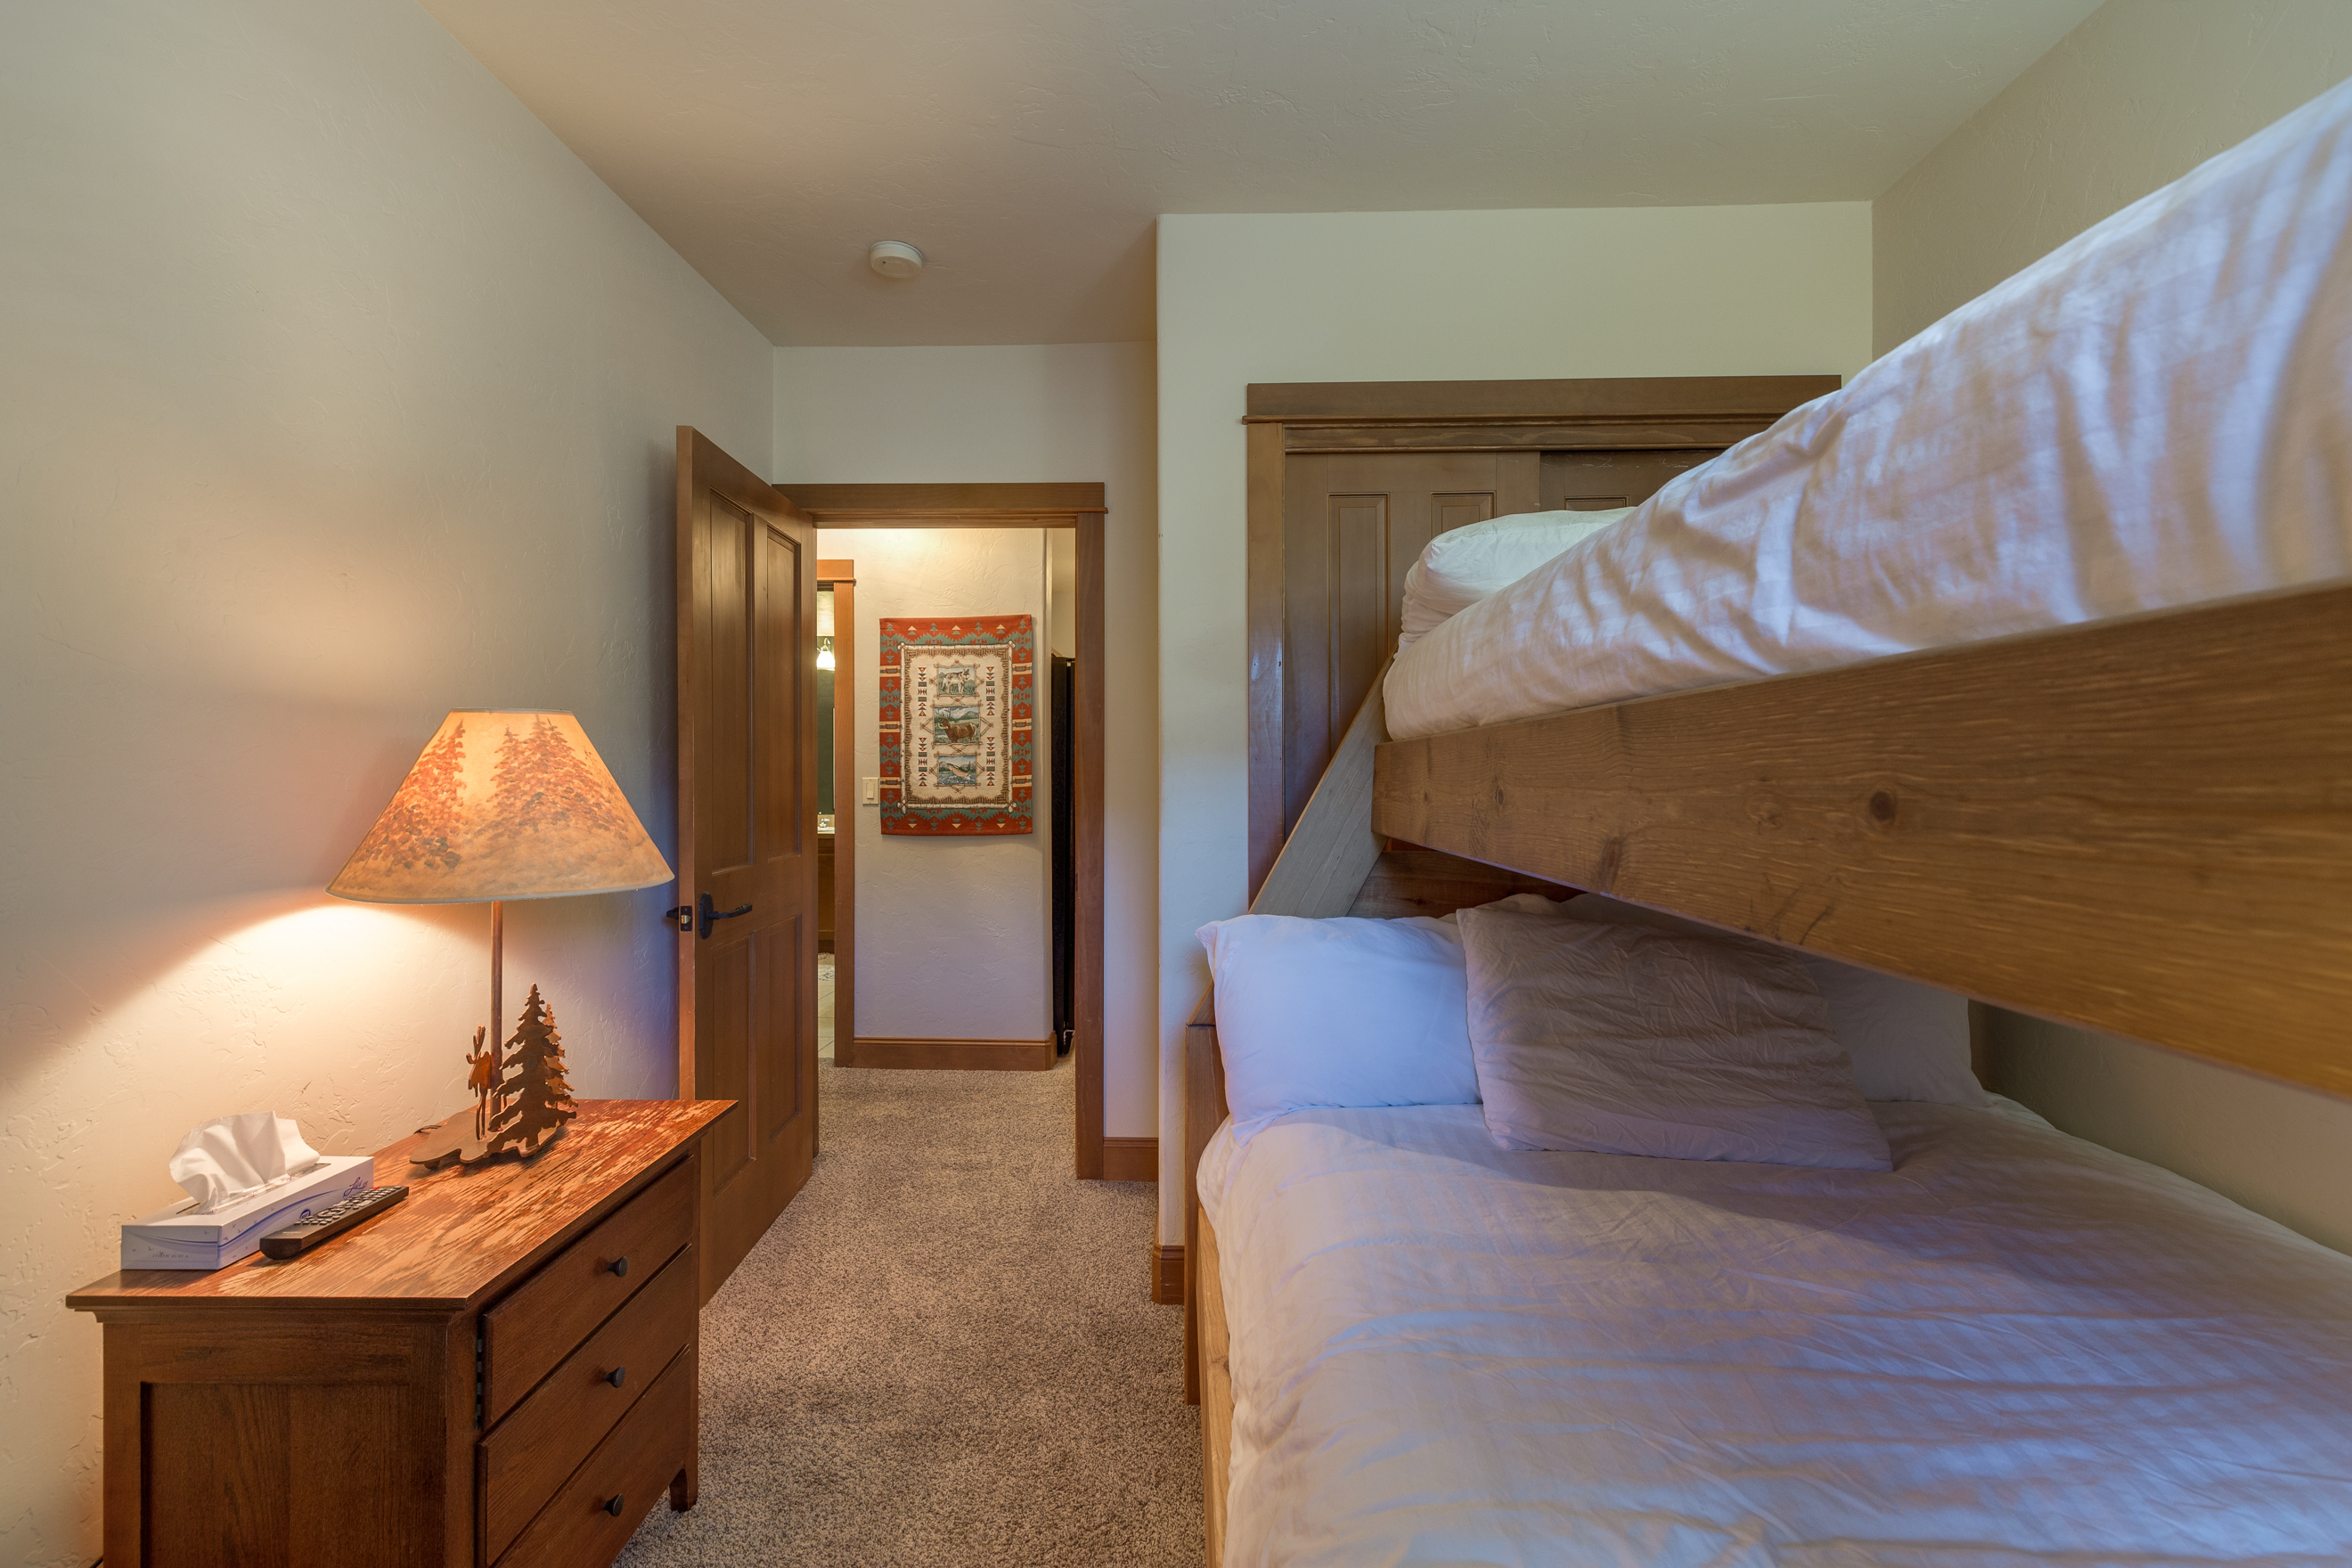 The guest bedroom features a twin-over-full bunk bed with Ivory White Bedding and a flat screen TV.